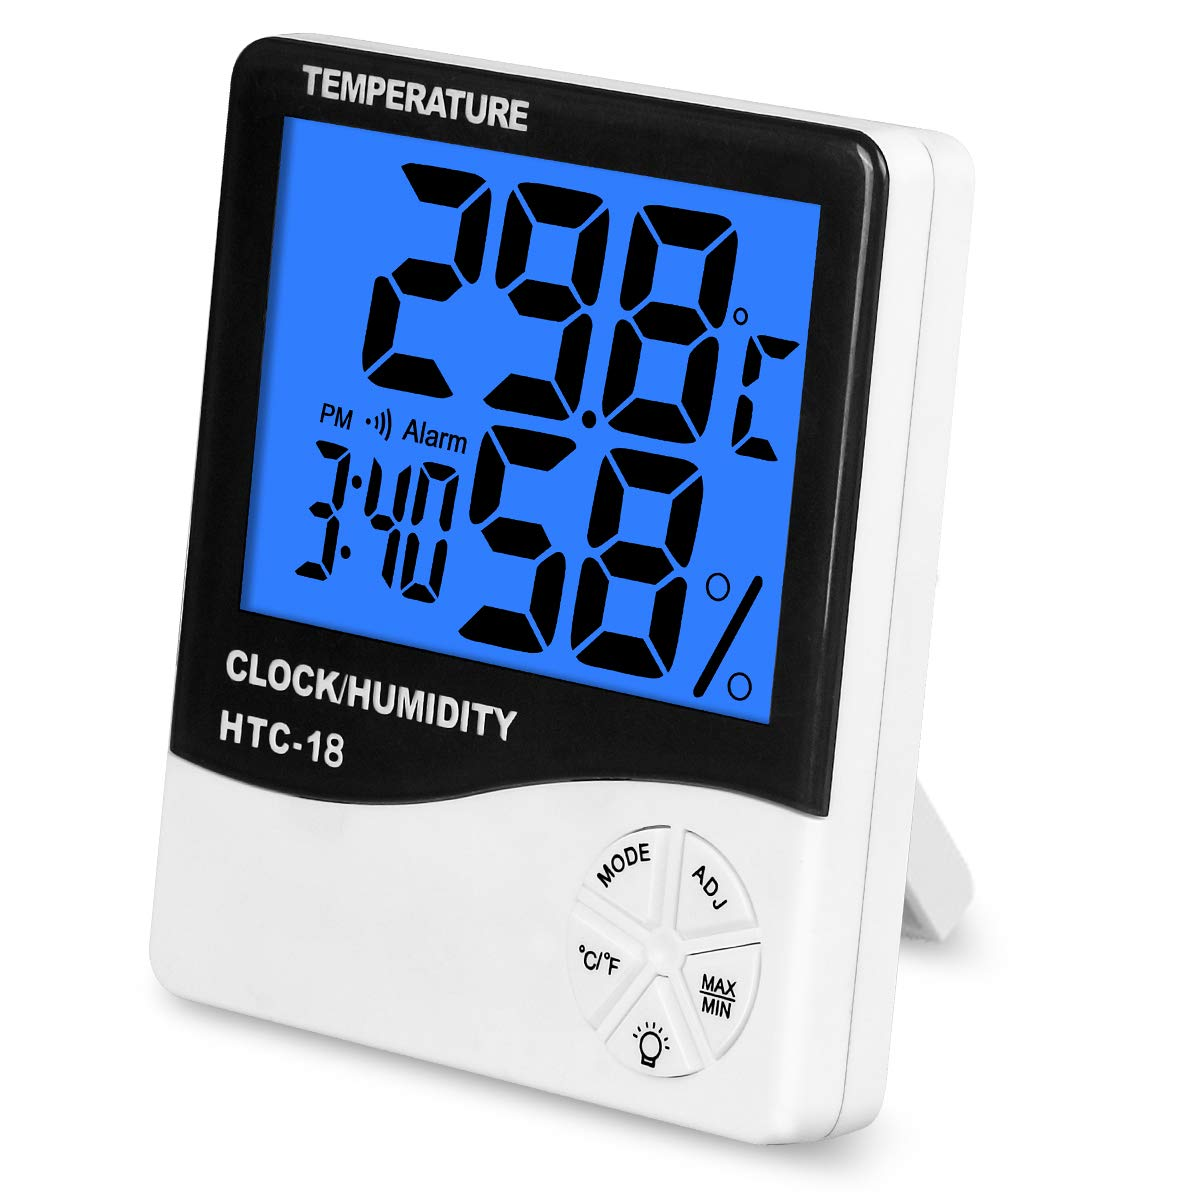 Calmare Digital Hygrometer Thermometer, Indoor Digital Thermometer Hygrometer Monitor with Indoor Thermometer, Digital Hygrometer and Humidity Gauge Indicator MZK